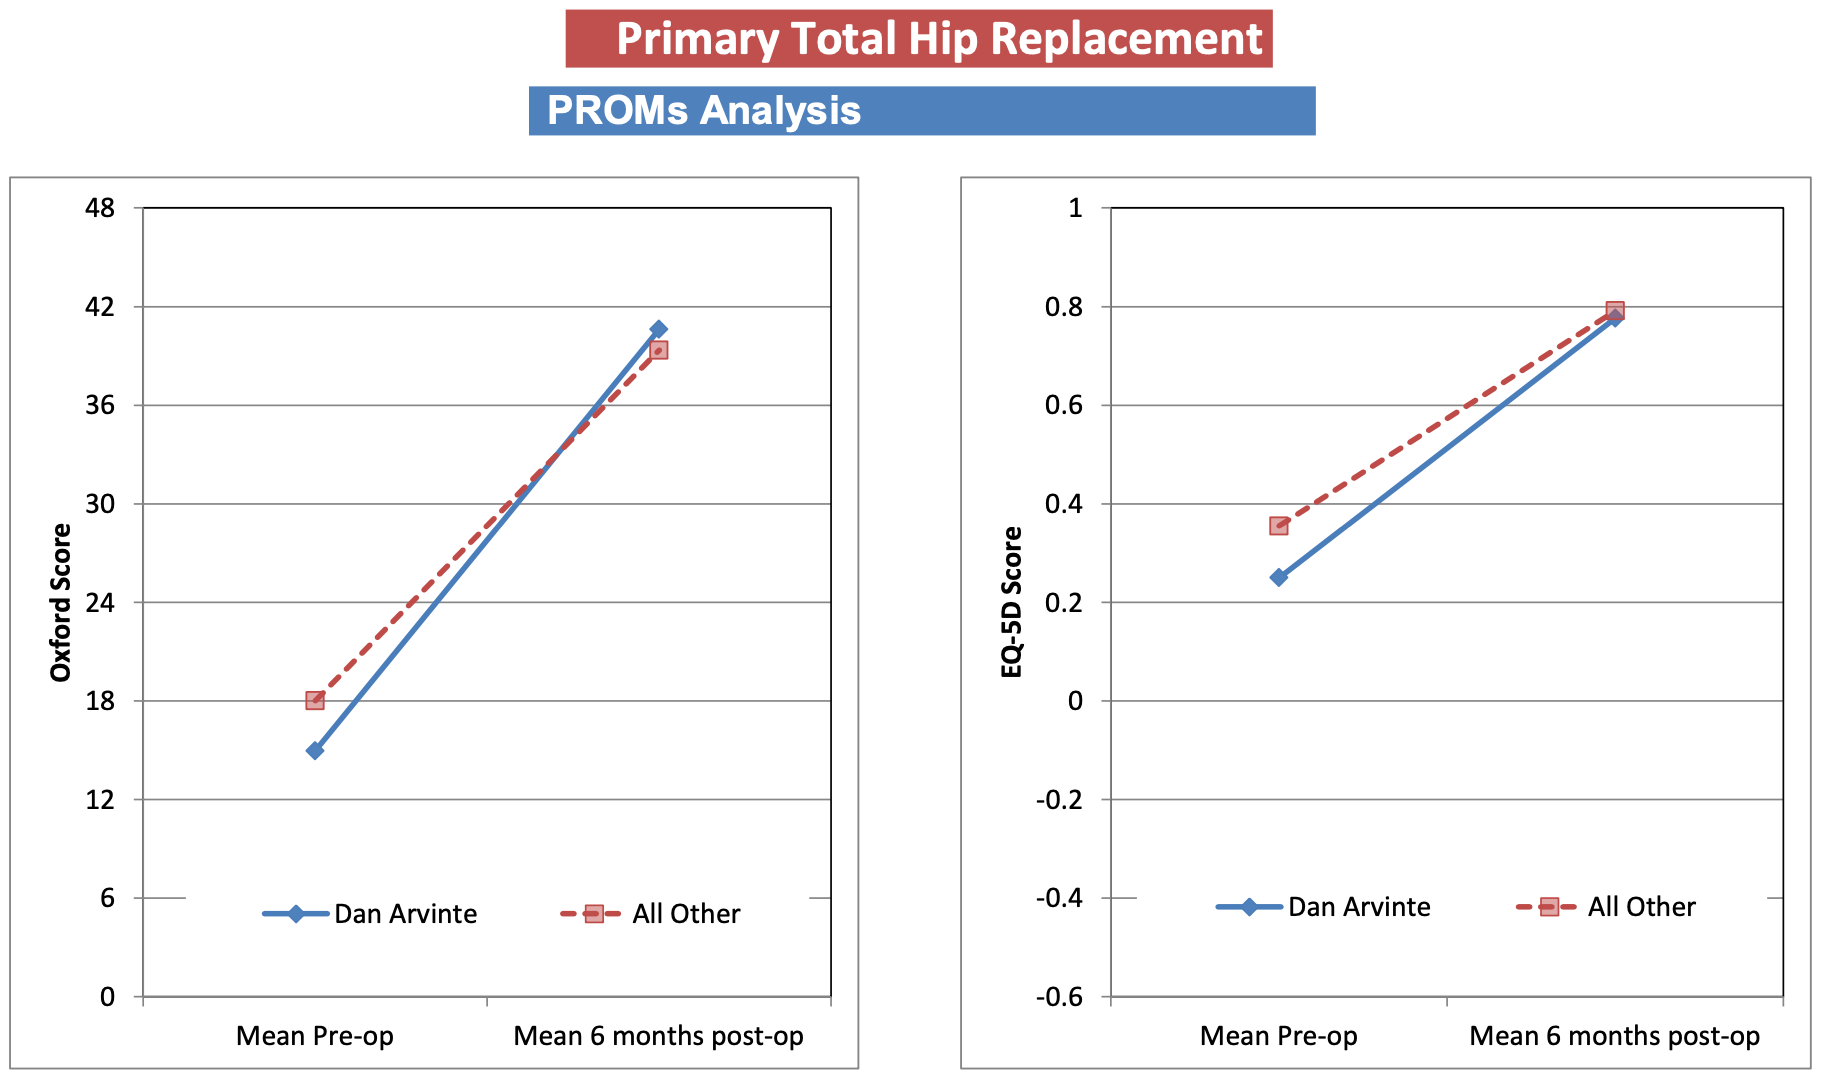 Graph showing Mr Arvinte's PROMS Analysis for Total Hip Replacements